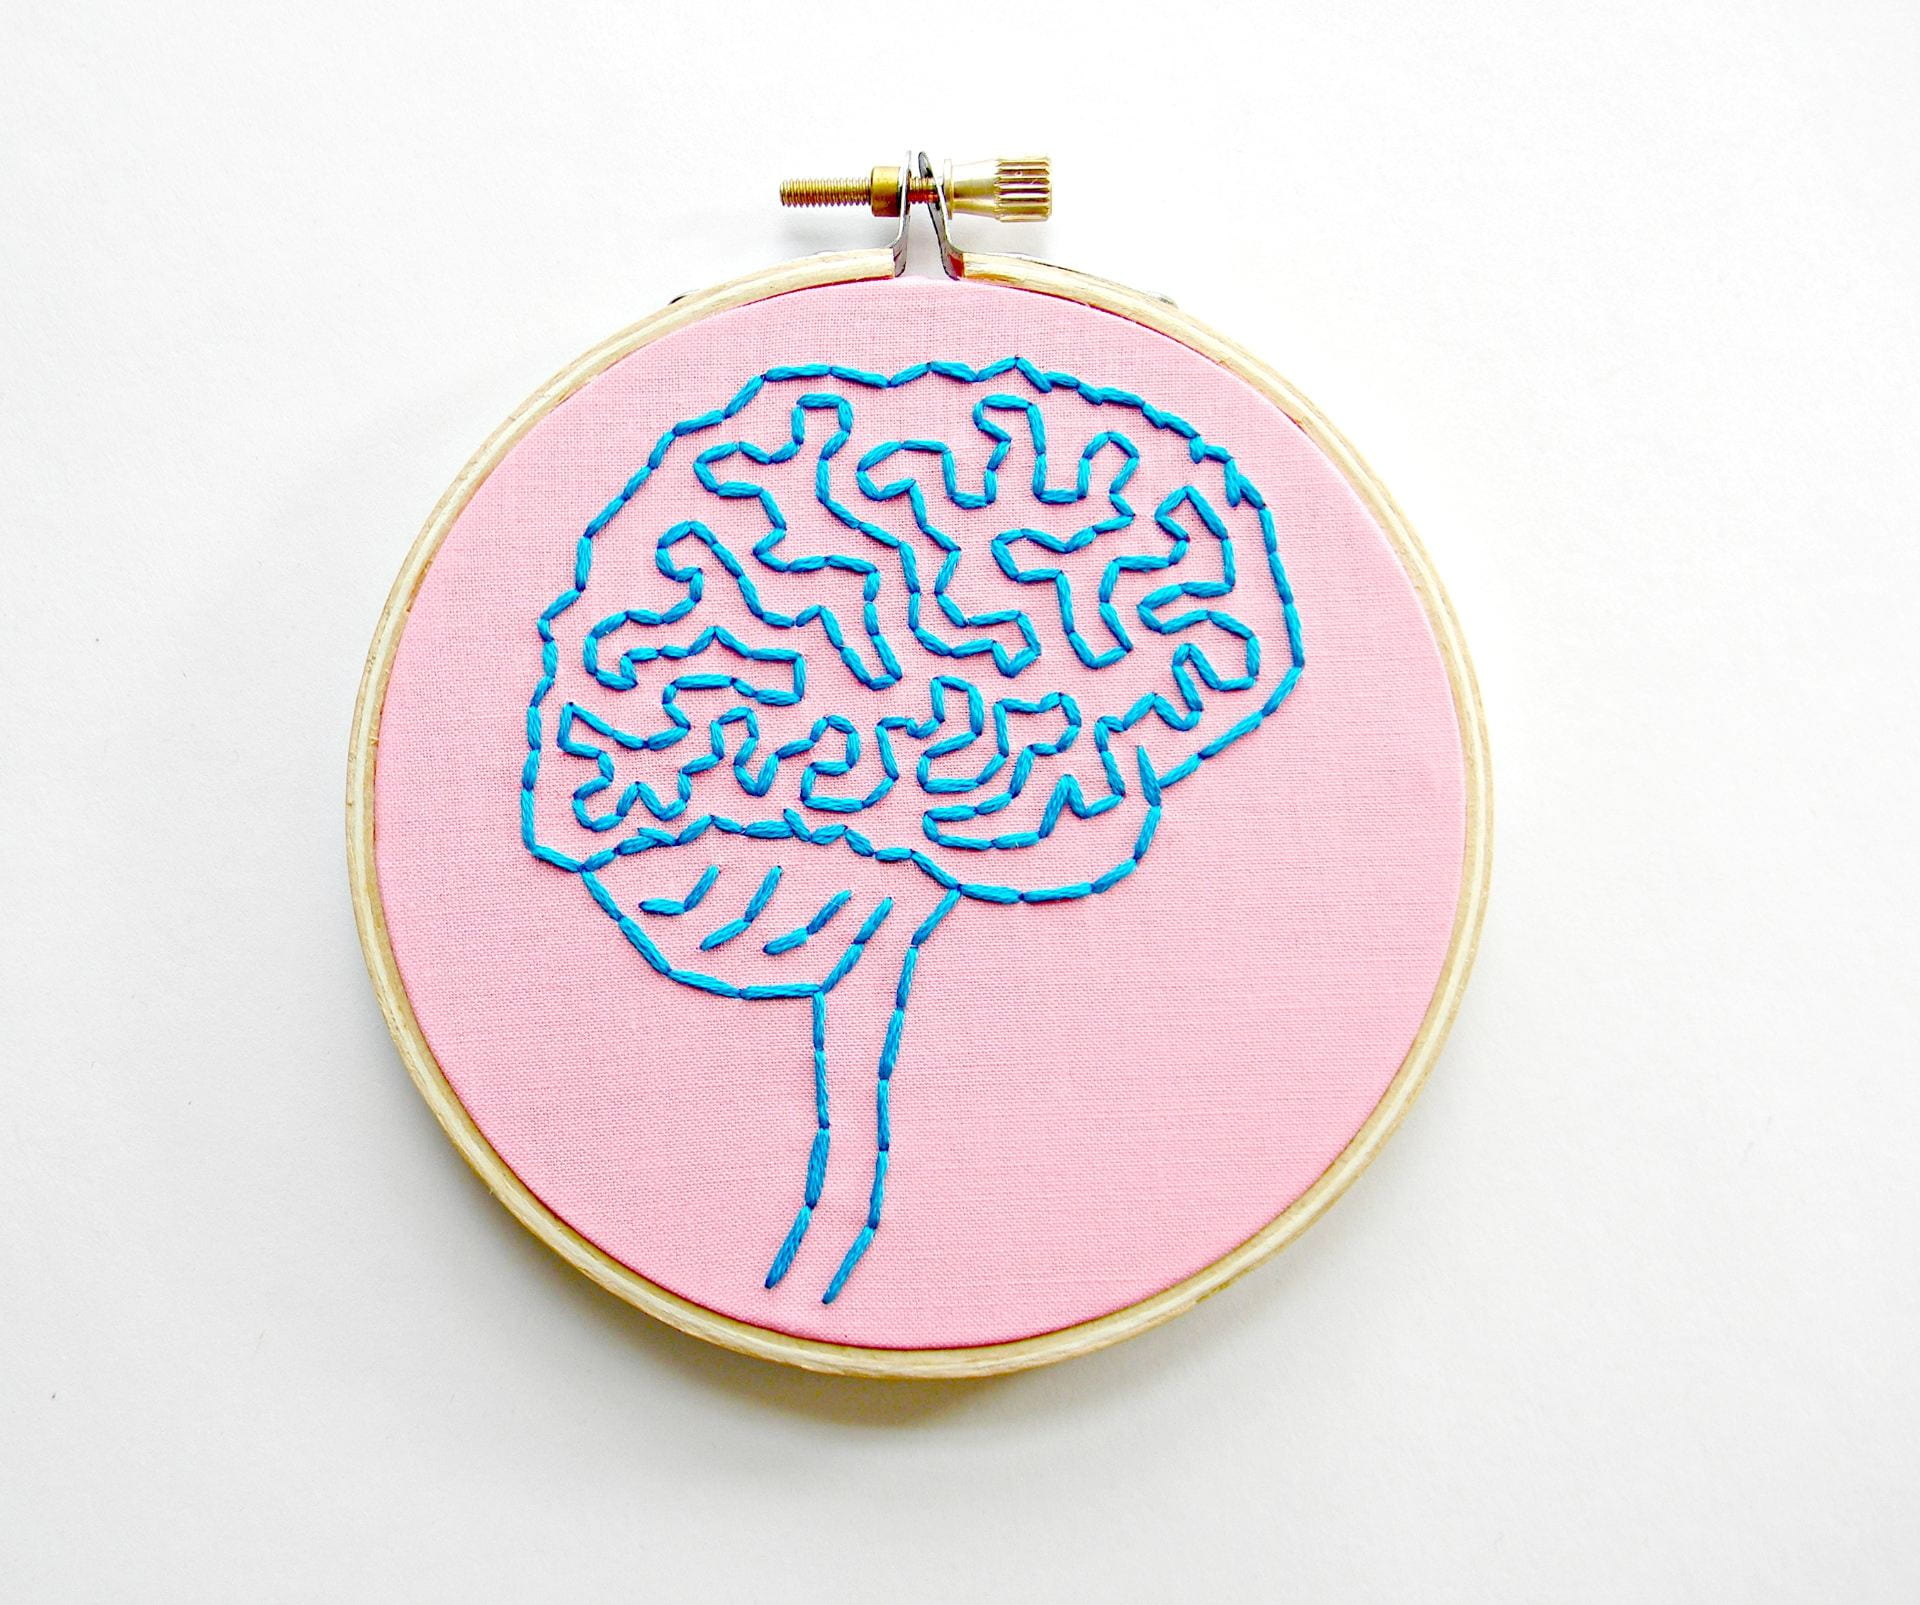 An image of a brain embroidered on a piece of fabric in an embroidery hoop.